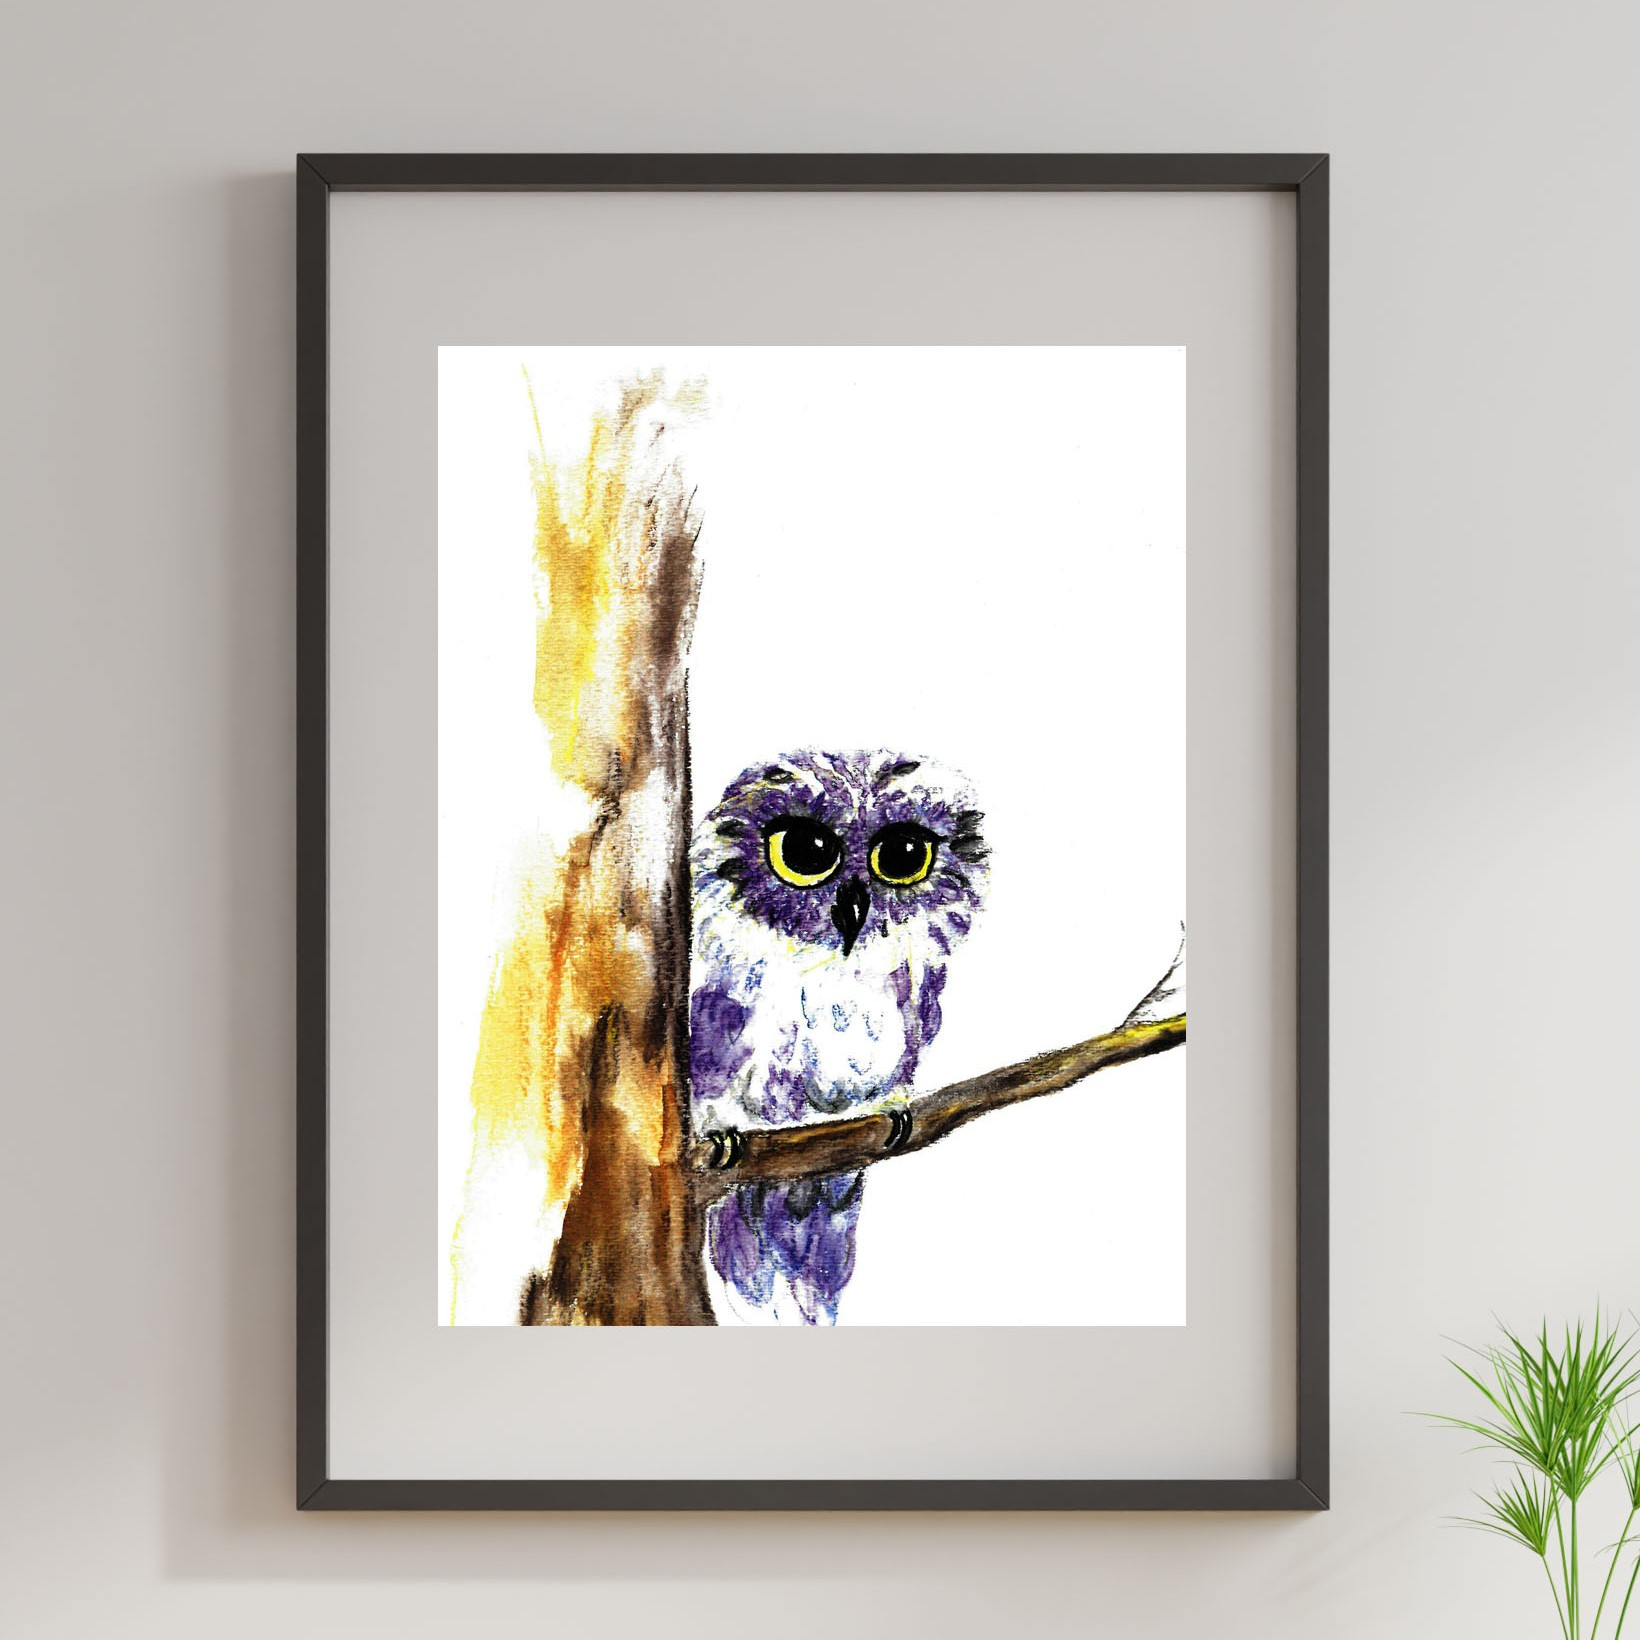 A lavender and blue colored owl with bright yellow eyes perches on a branch.